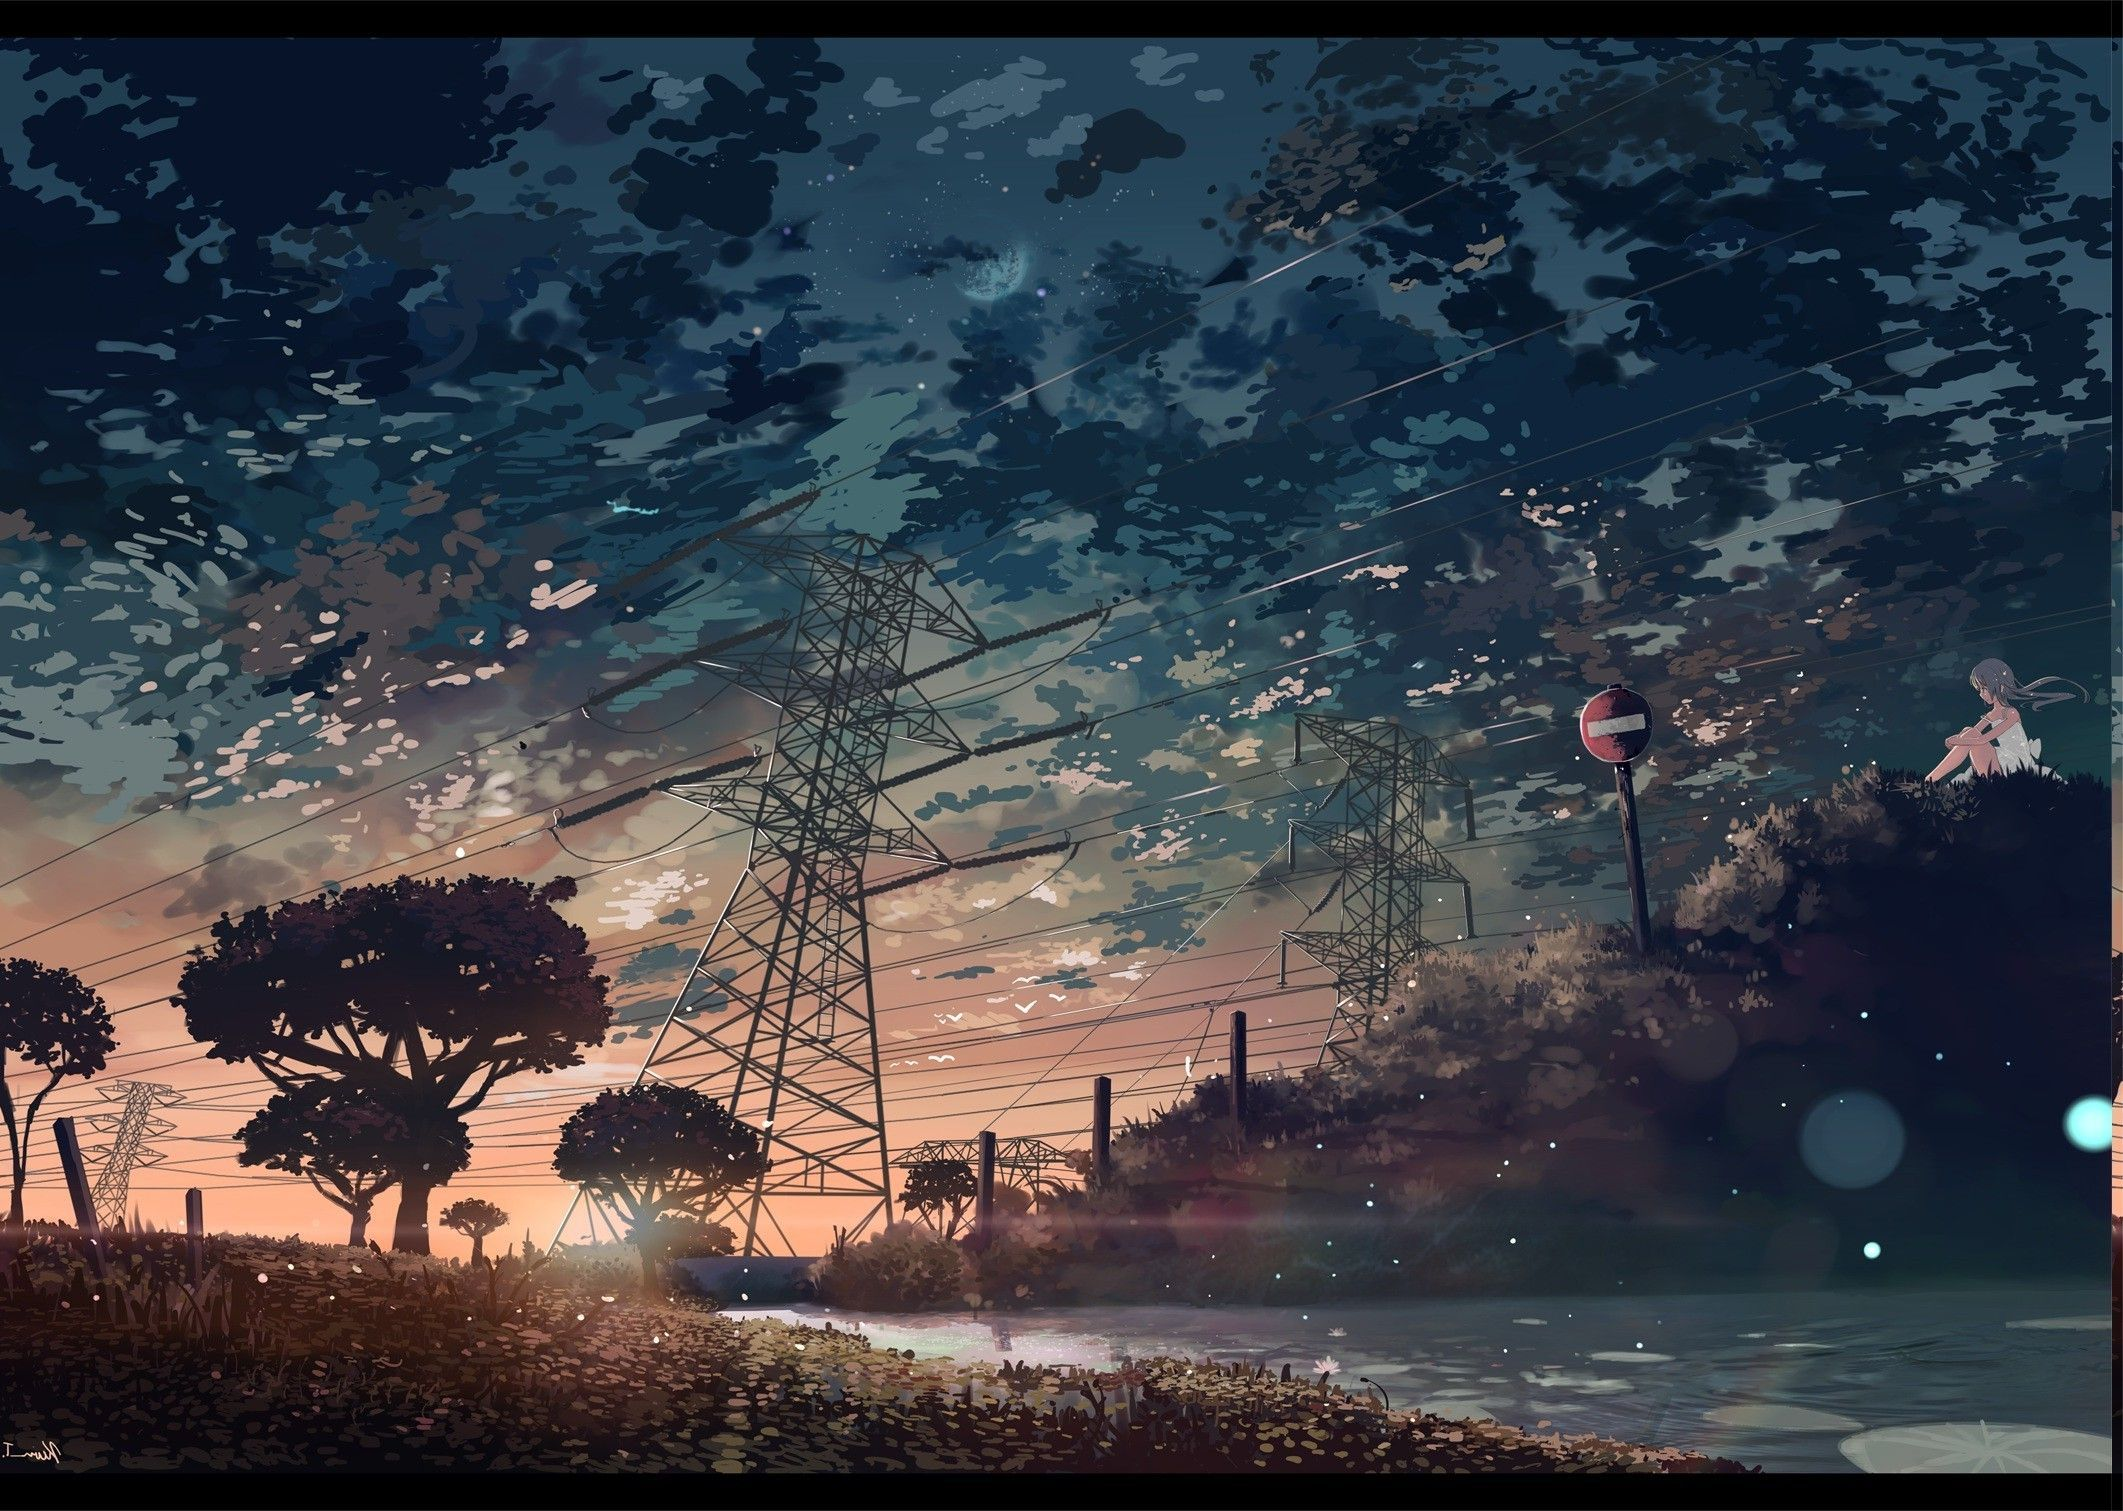 2123x1511 Anime Nature Wallpaper 77 Images Landscape Wallpaper Scenery Wallpaper Aesthetic Wallpapers